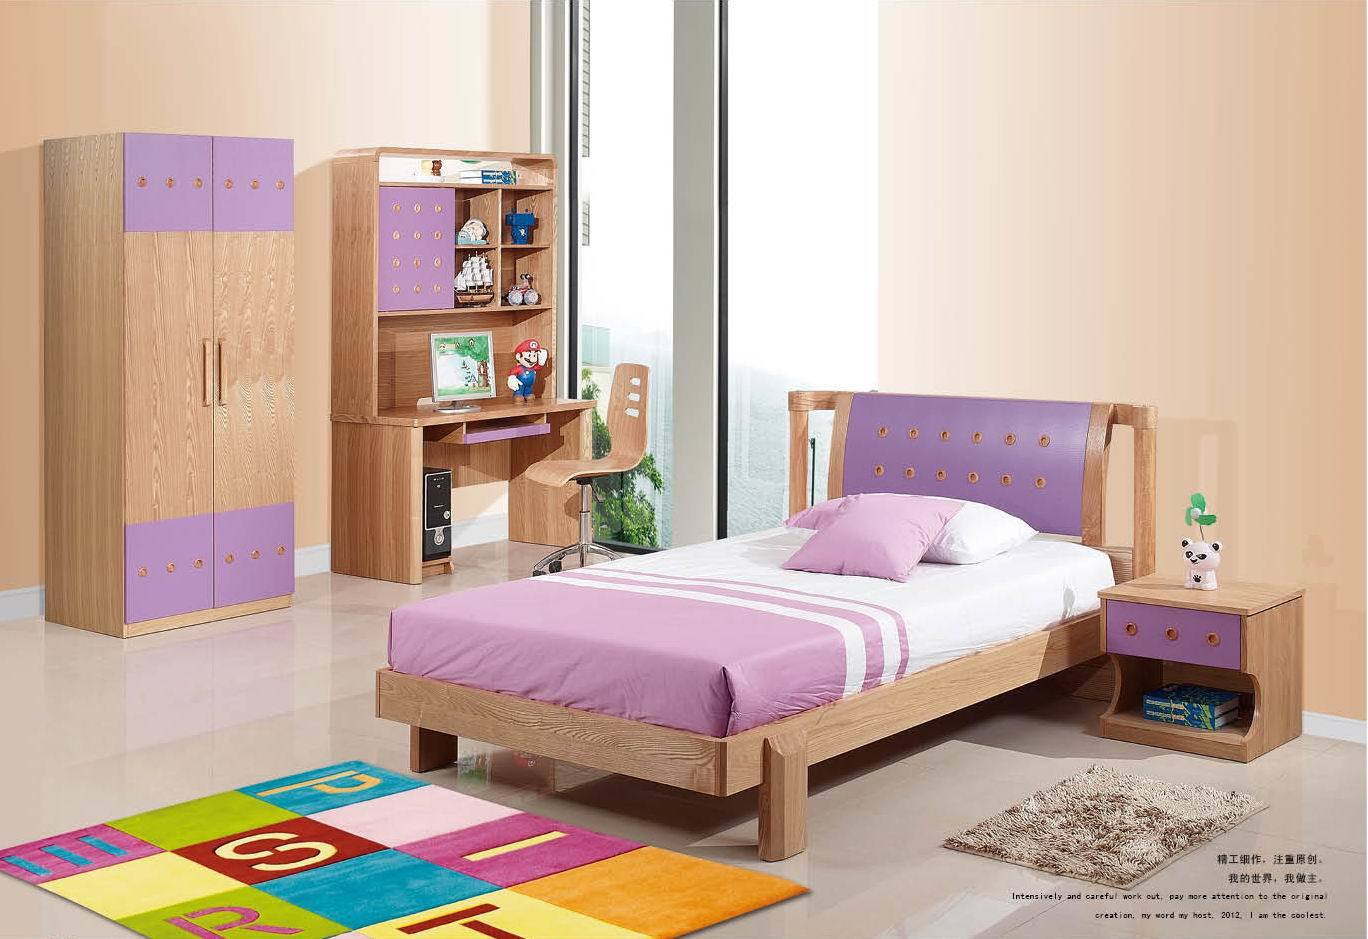 China kids bedroom set jkd 20130 china kids bedroom for Kids bedroom furniture sets